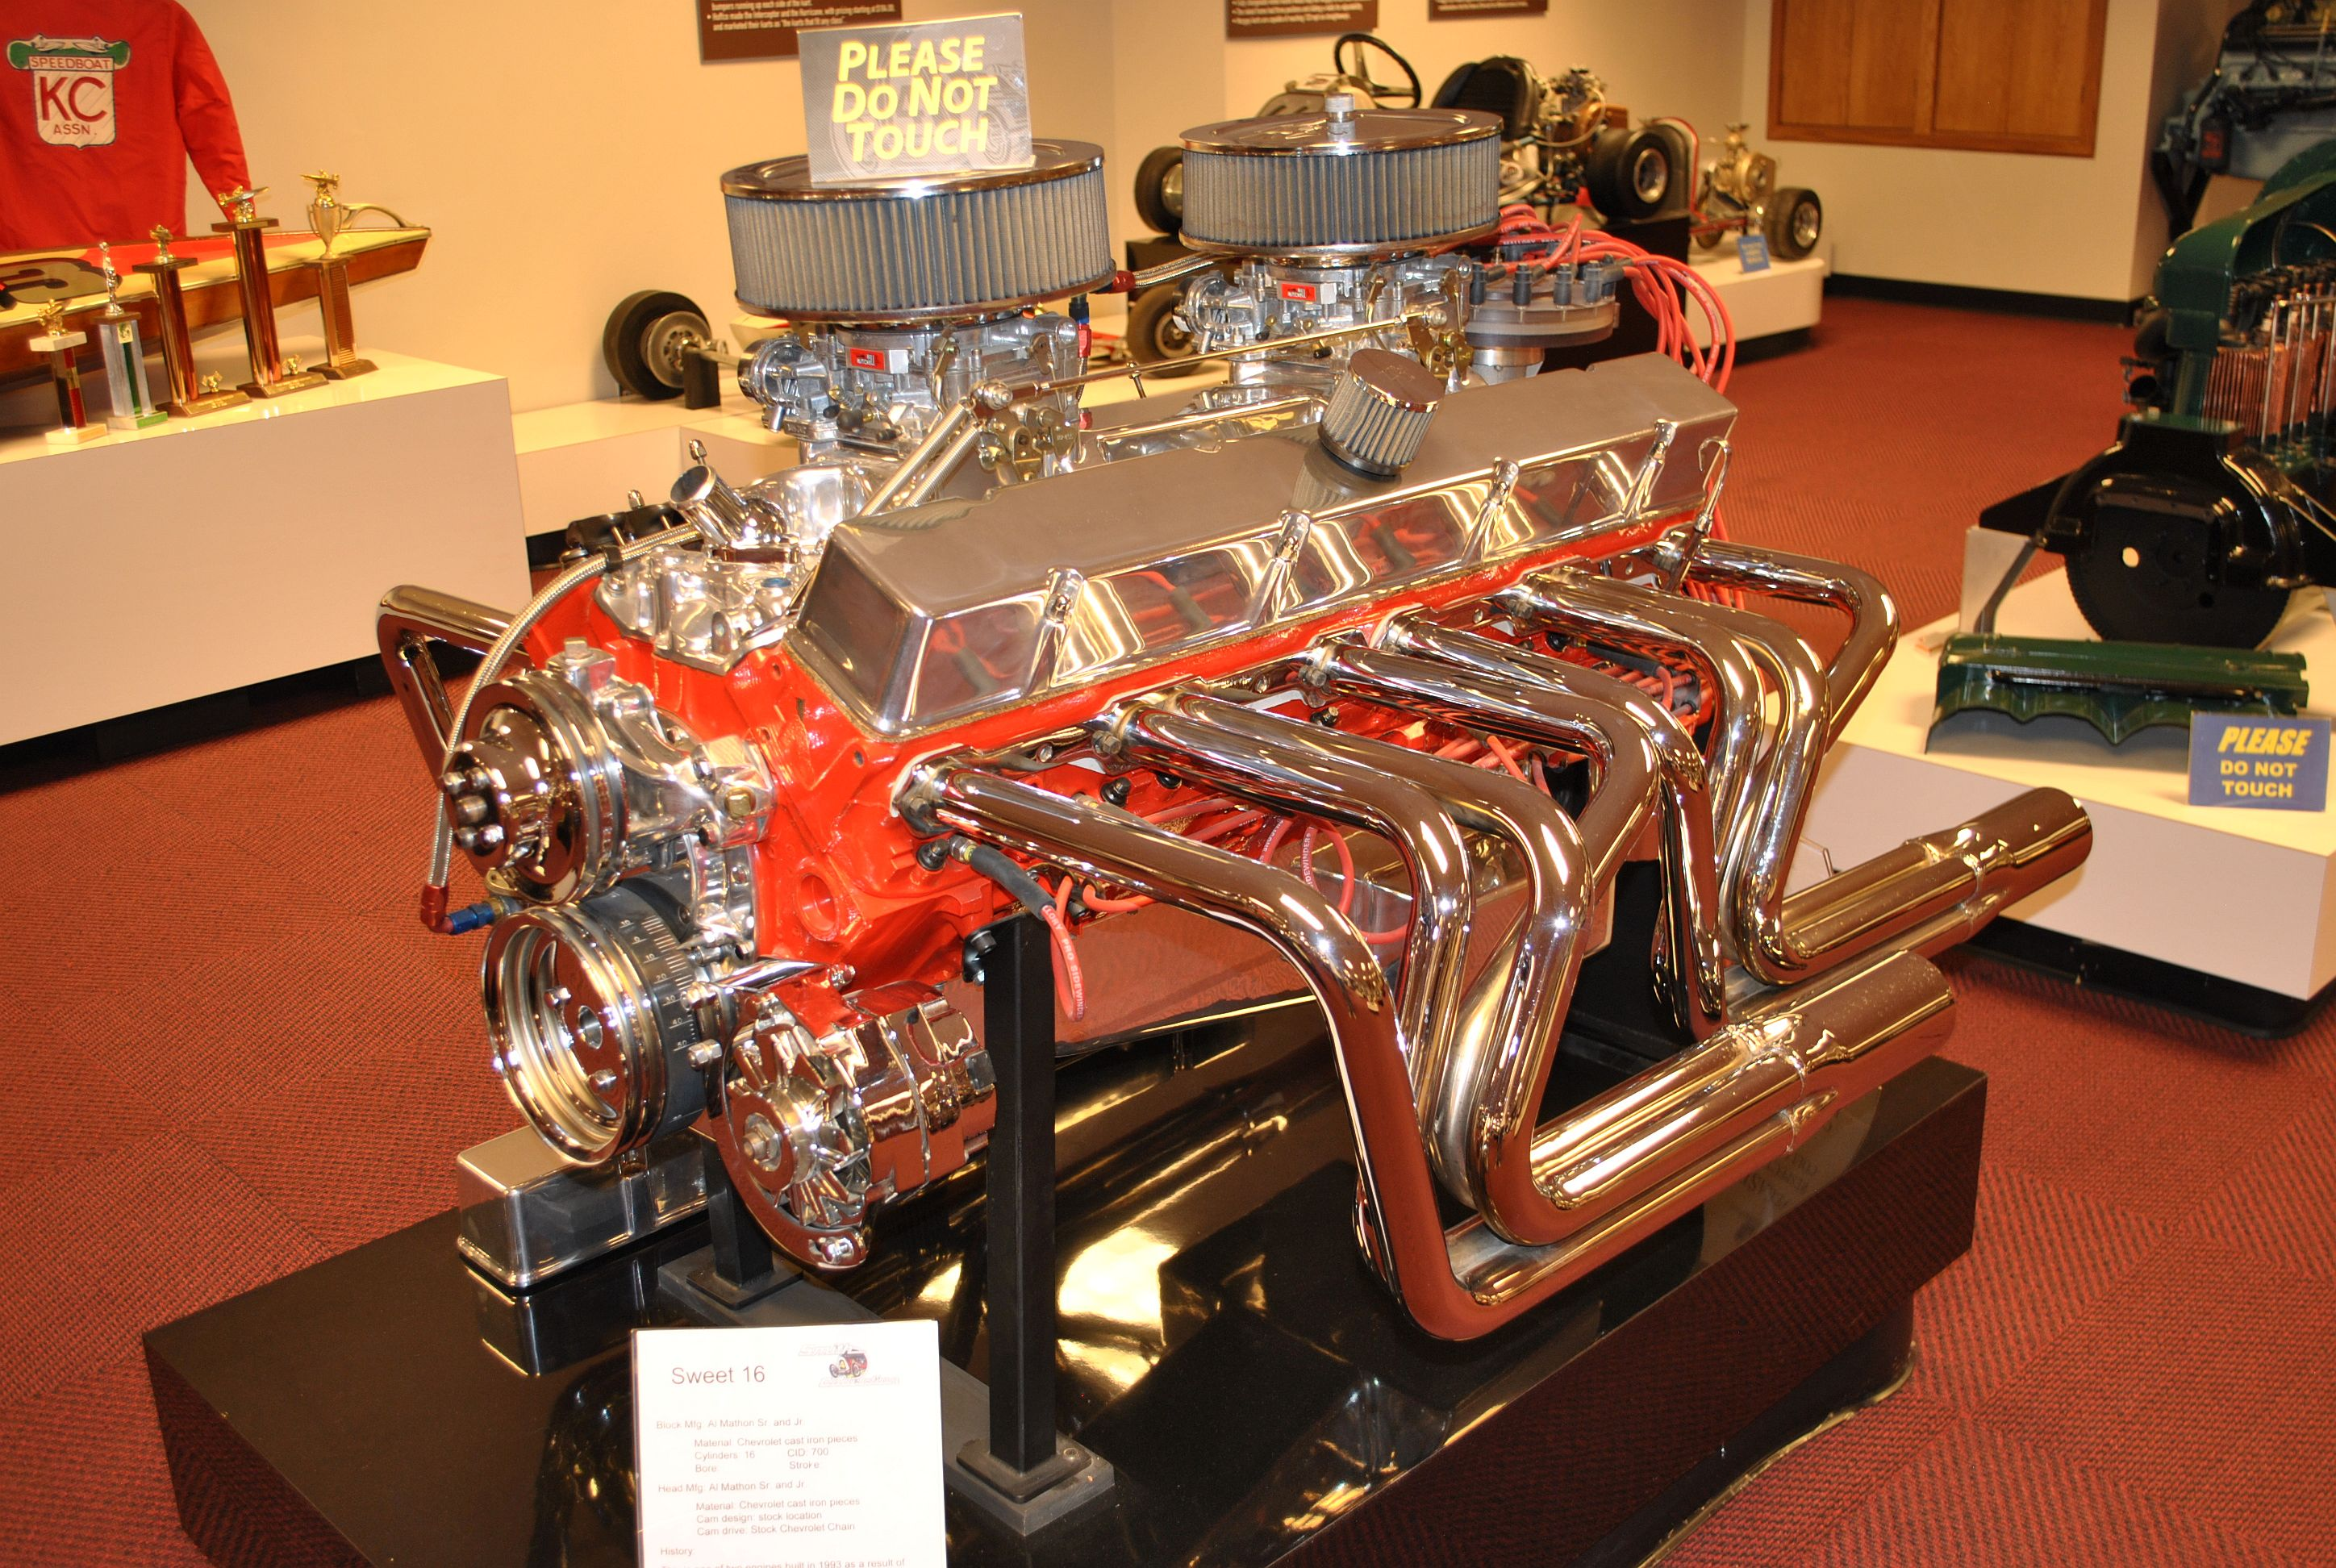 Speedway Motors Museum Of American Speed: More Photos From The Amazing Collection